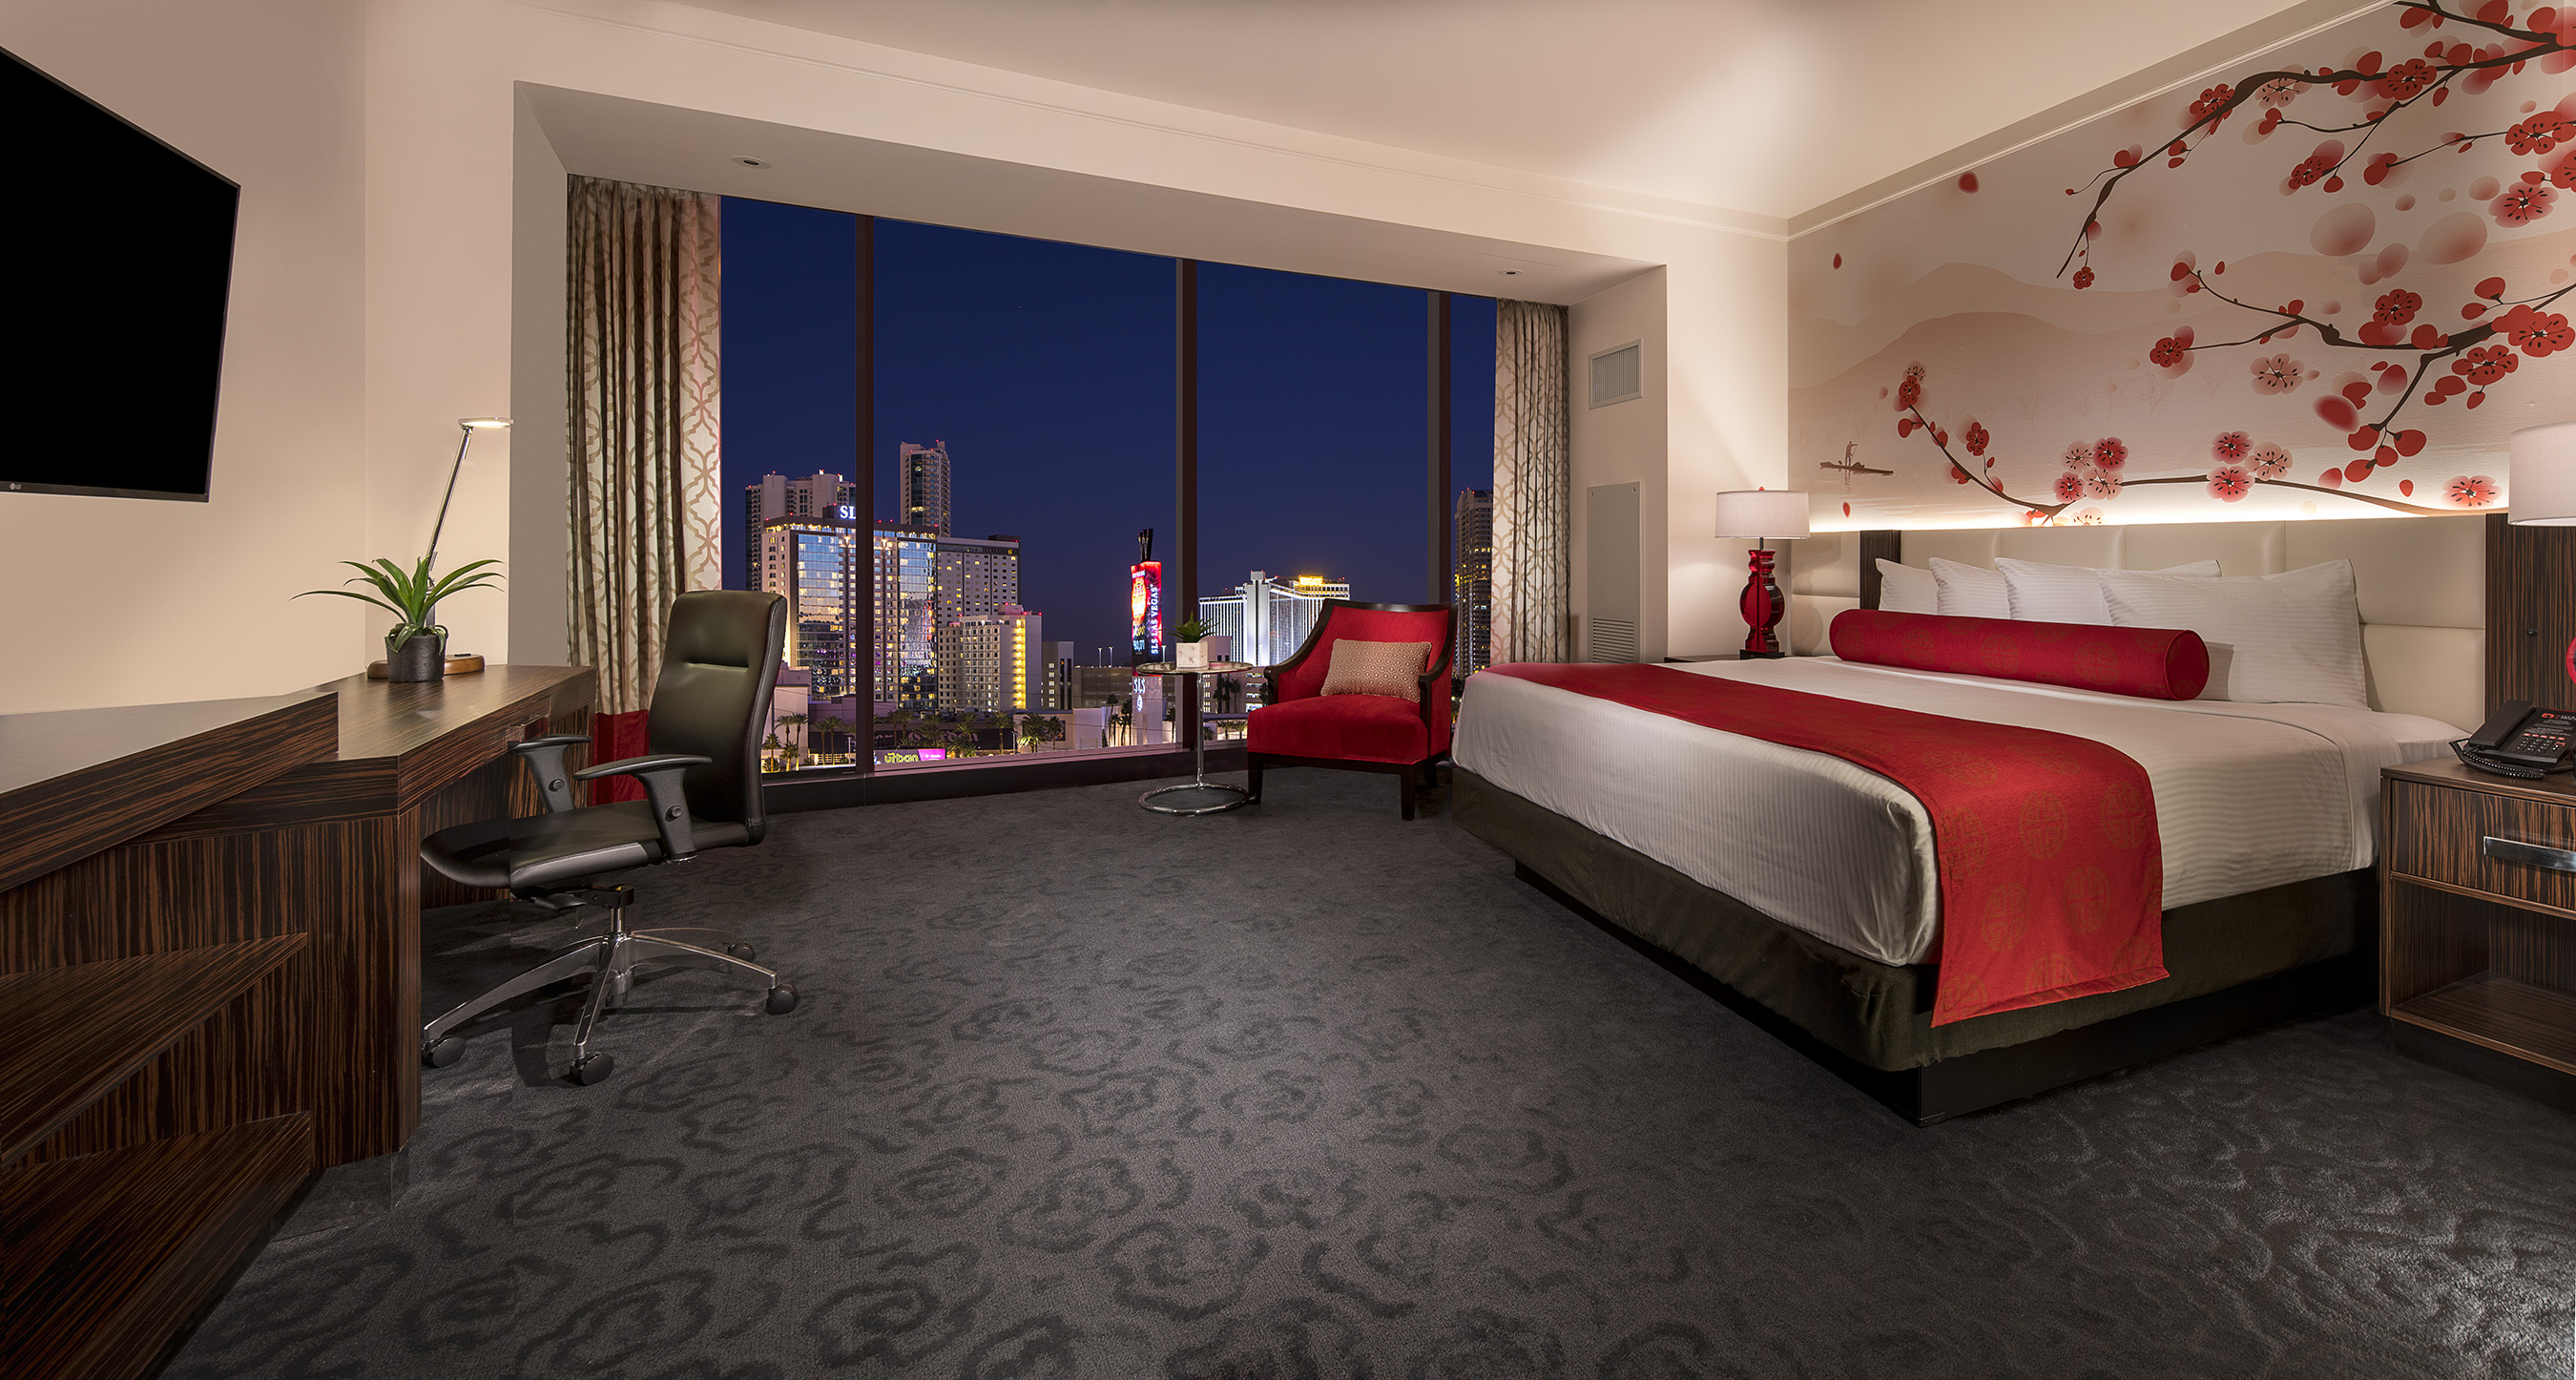 Rooms: Lucky Dragon Hotel & Casino In Las Vegas Opens Its Doors To The World With Grand Opening